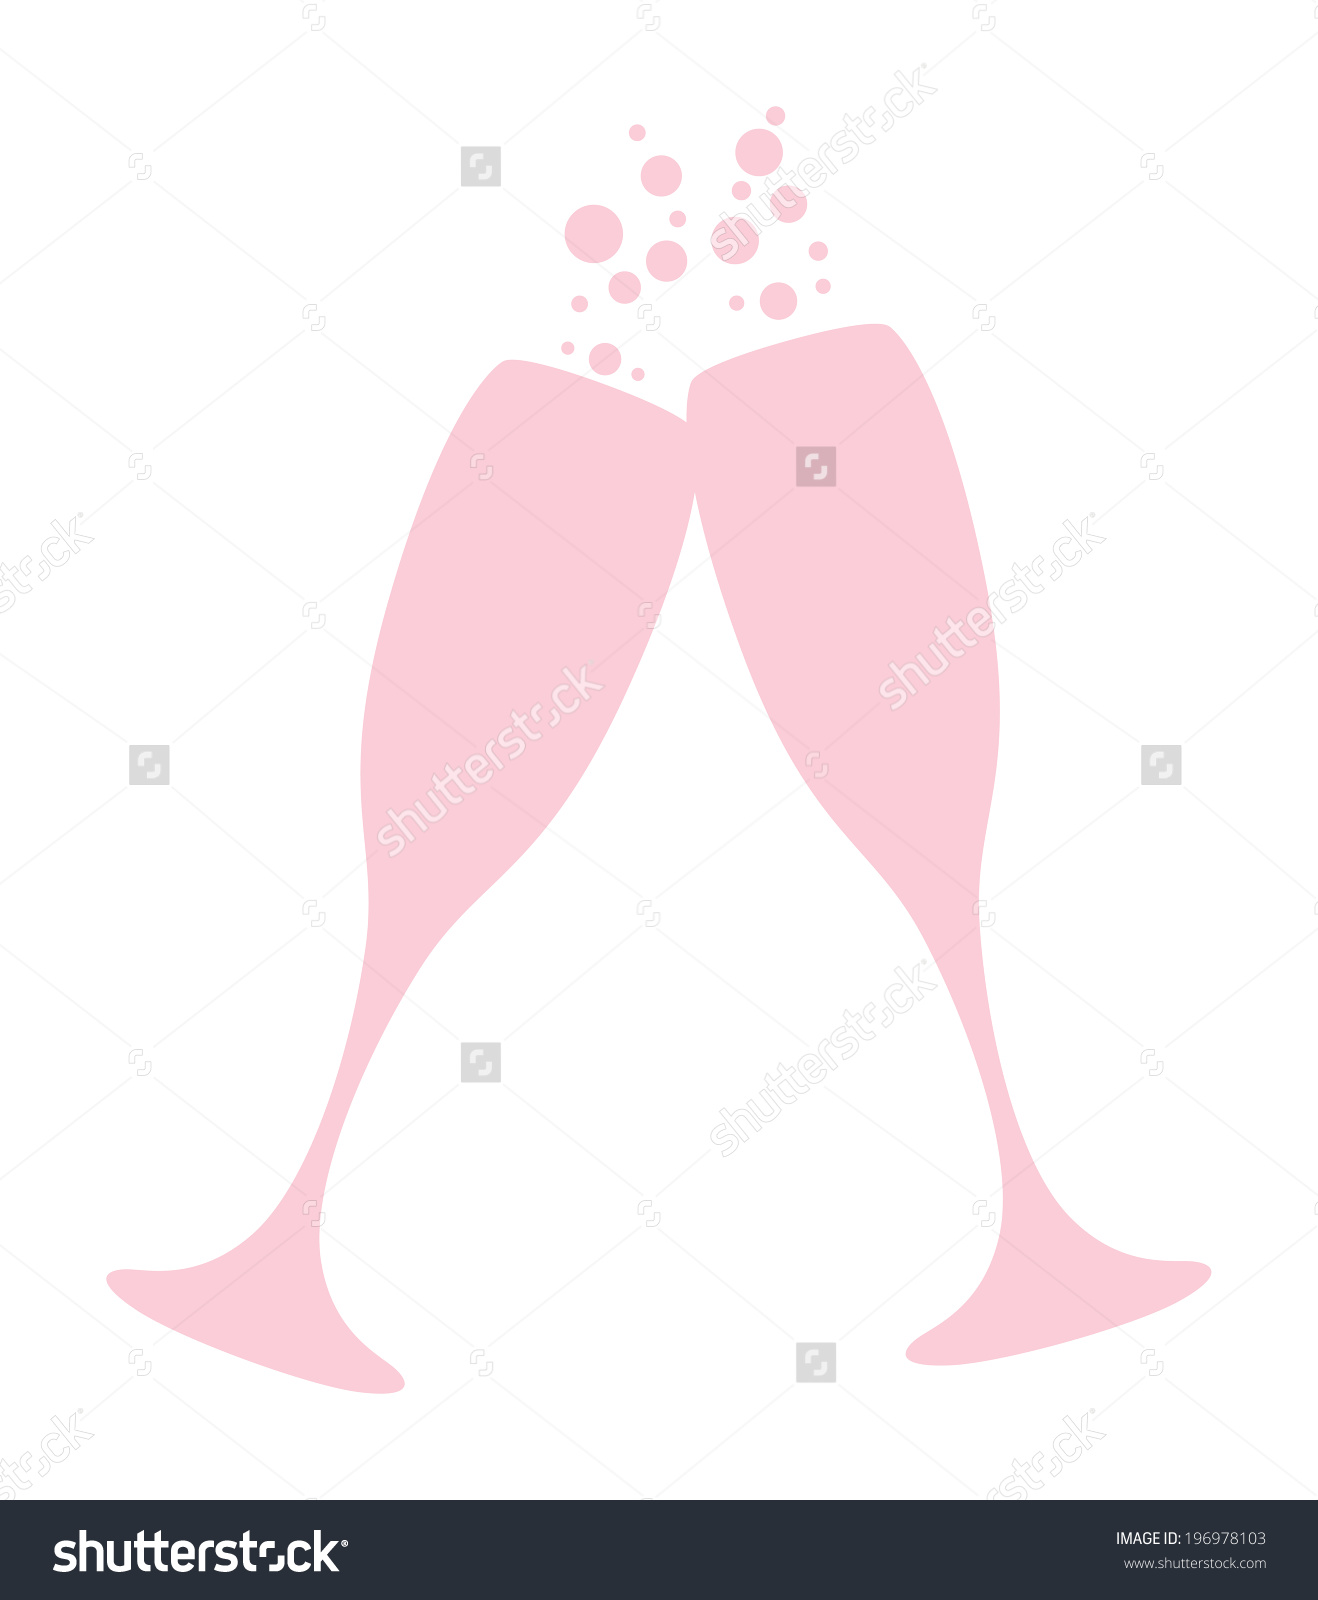 Champagne glass with bubbles clipart.